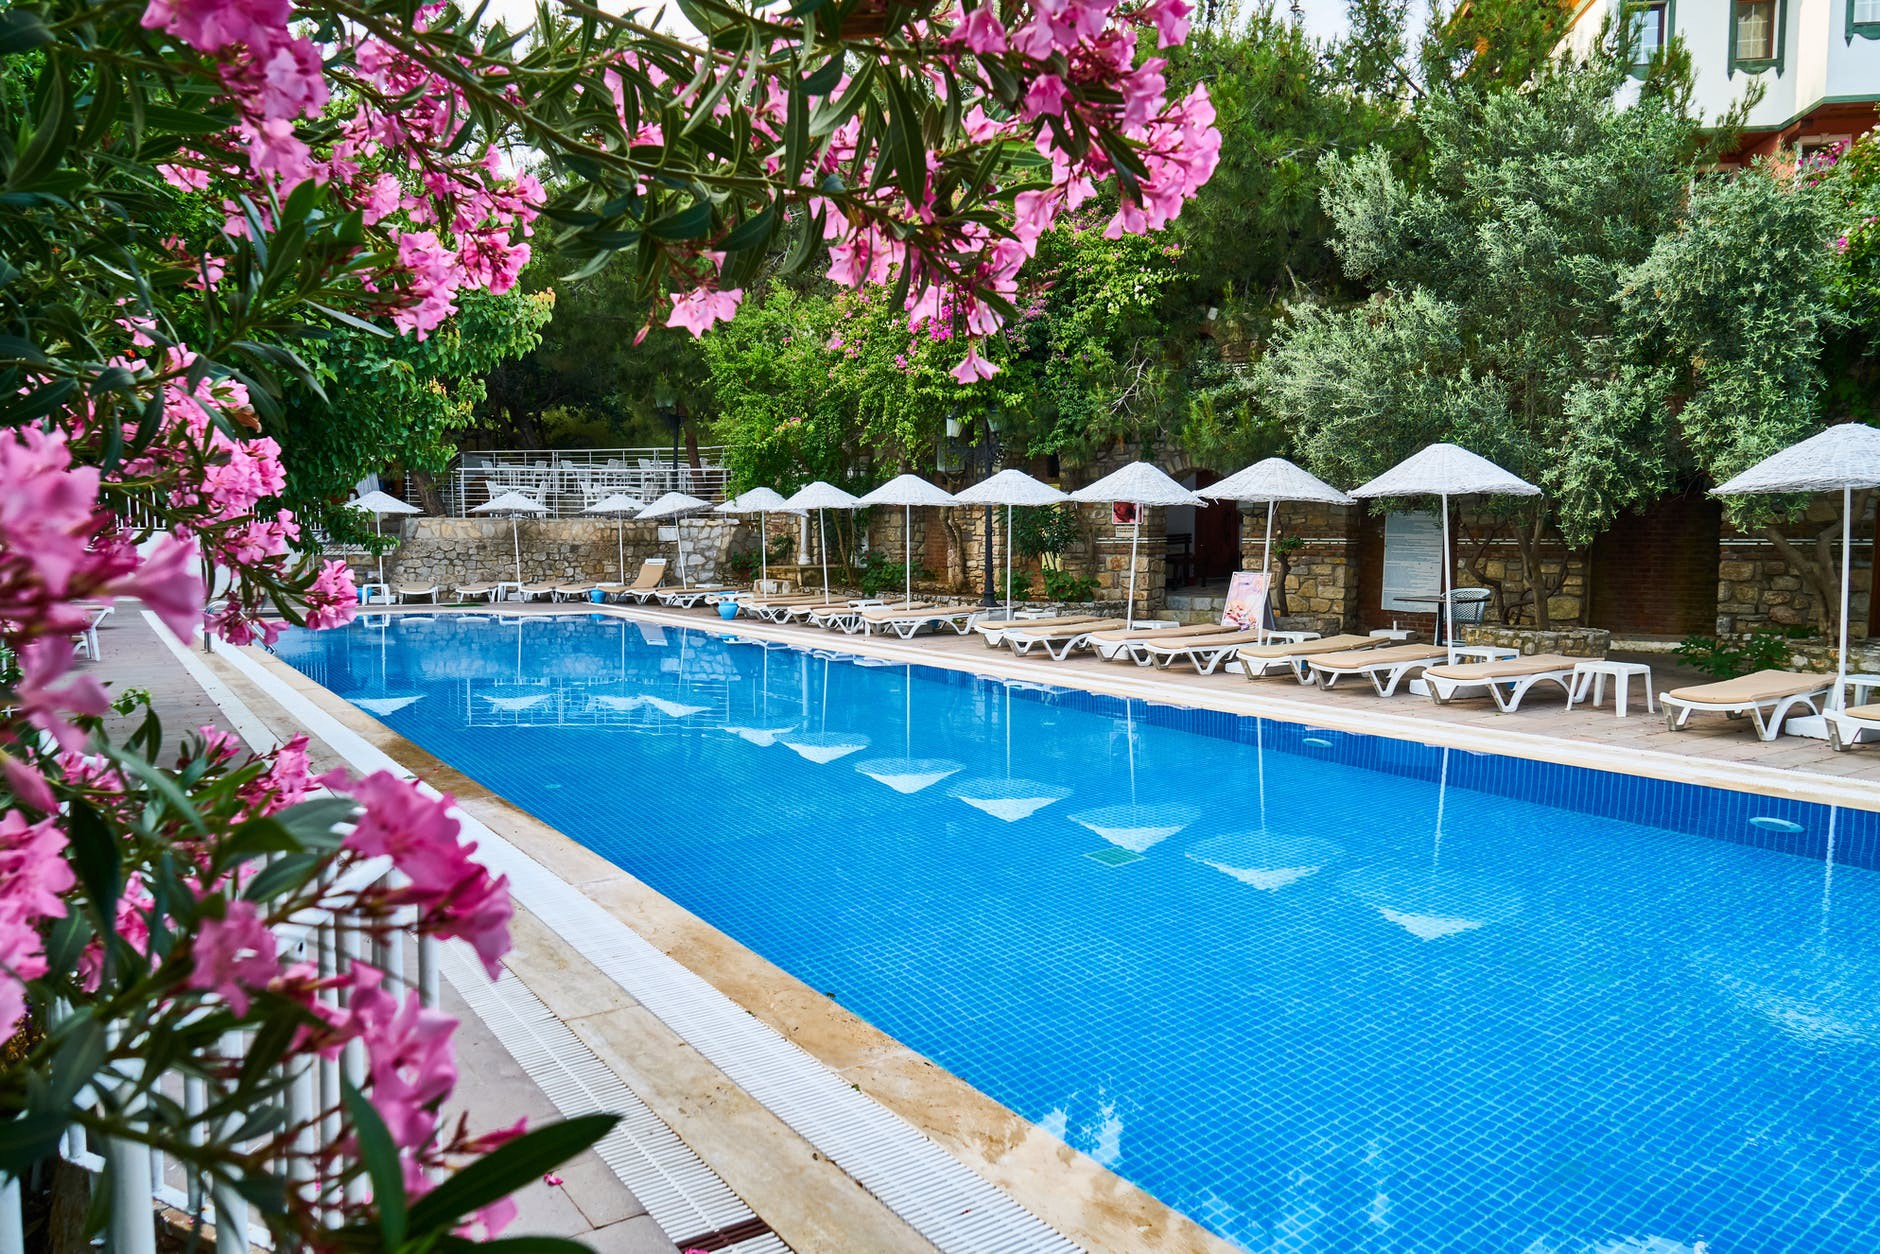 Tropical Plants For Your Pool Area Paradise Awaits